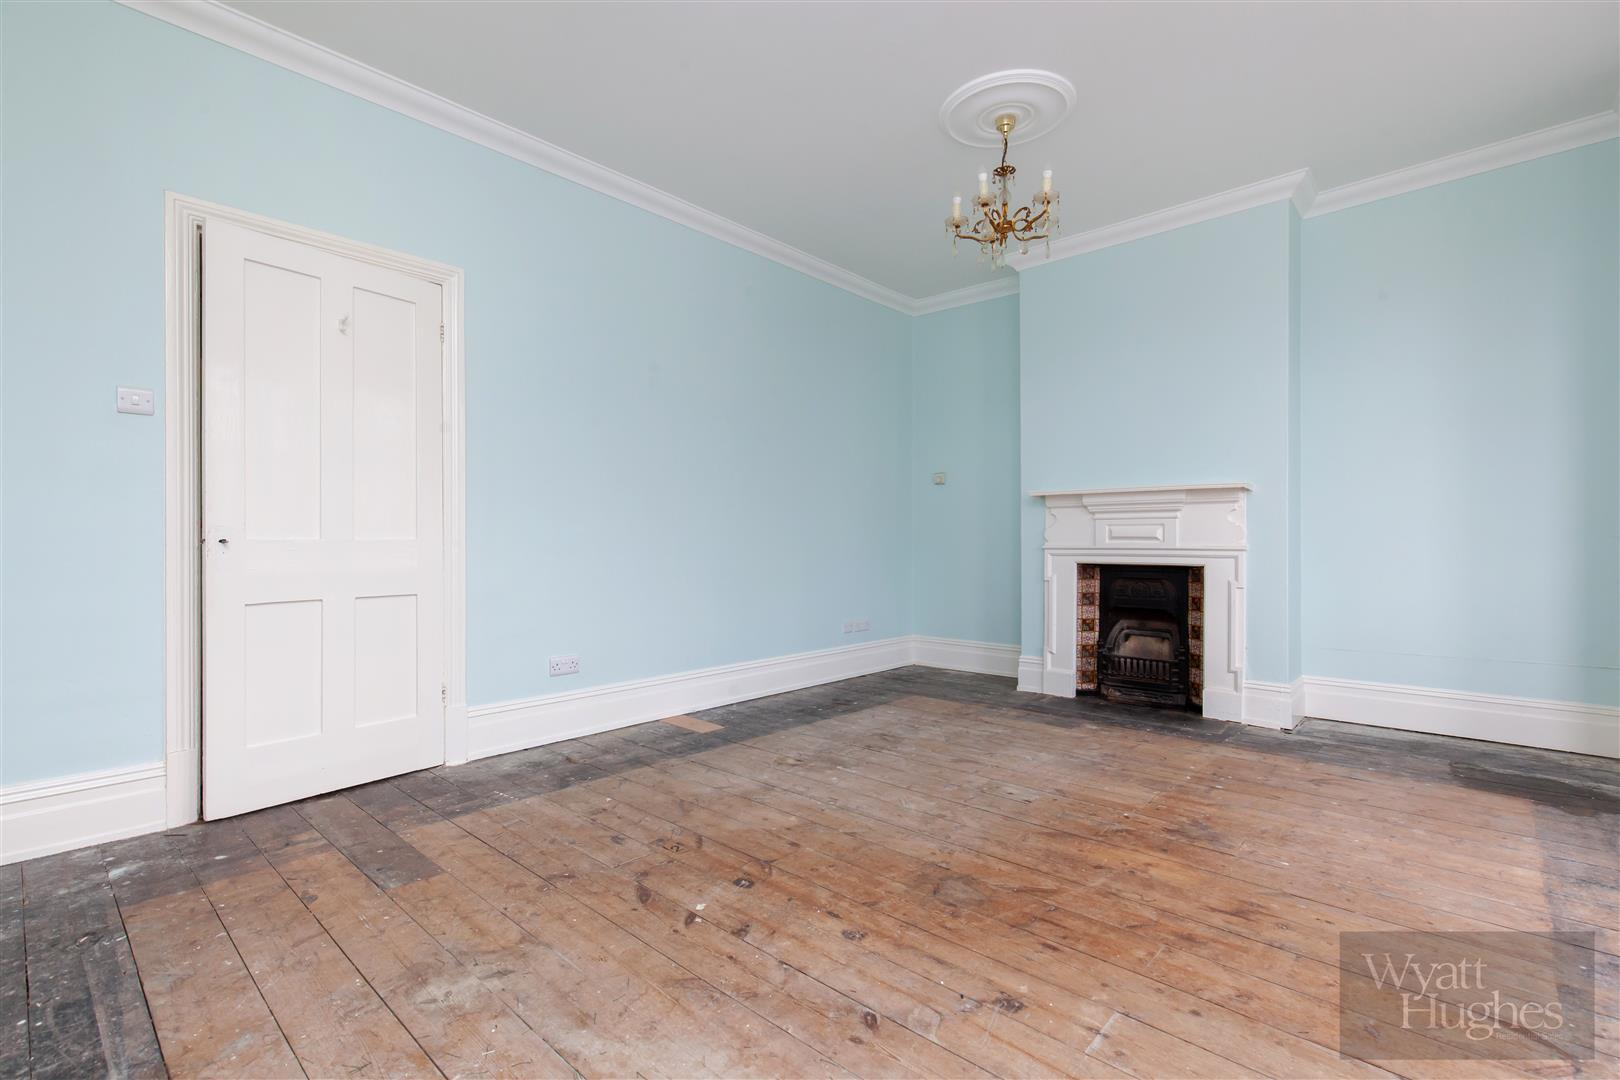 3 bed end-of-terrace-house for sale in Burry Road, St. Leonards-On-Sea  - Property Image 9